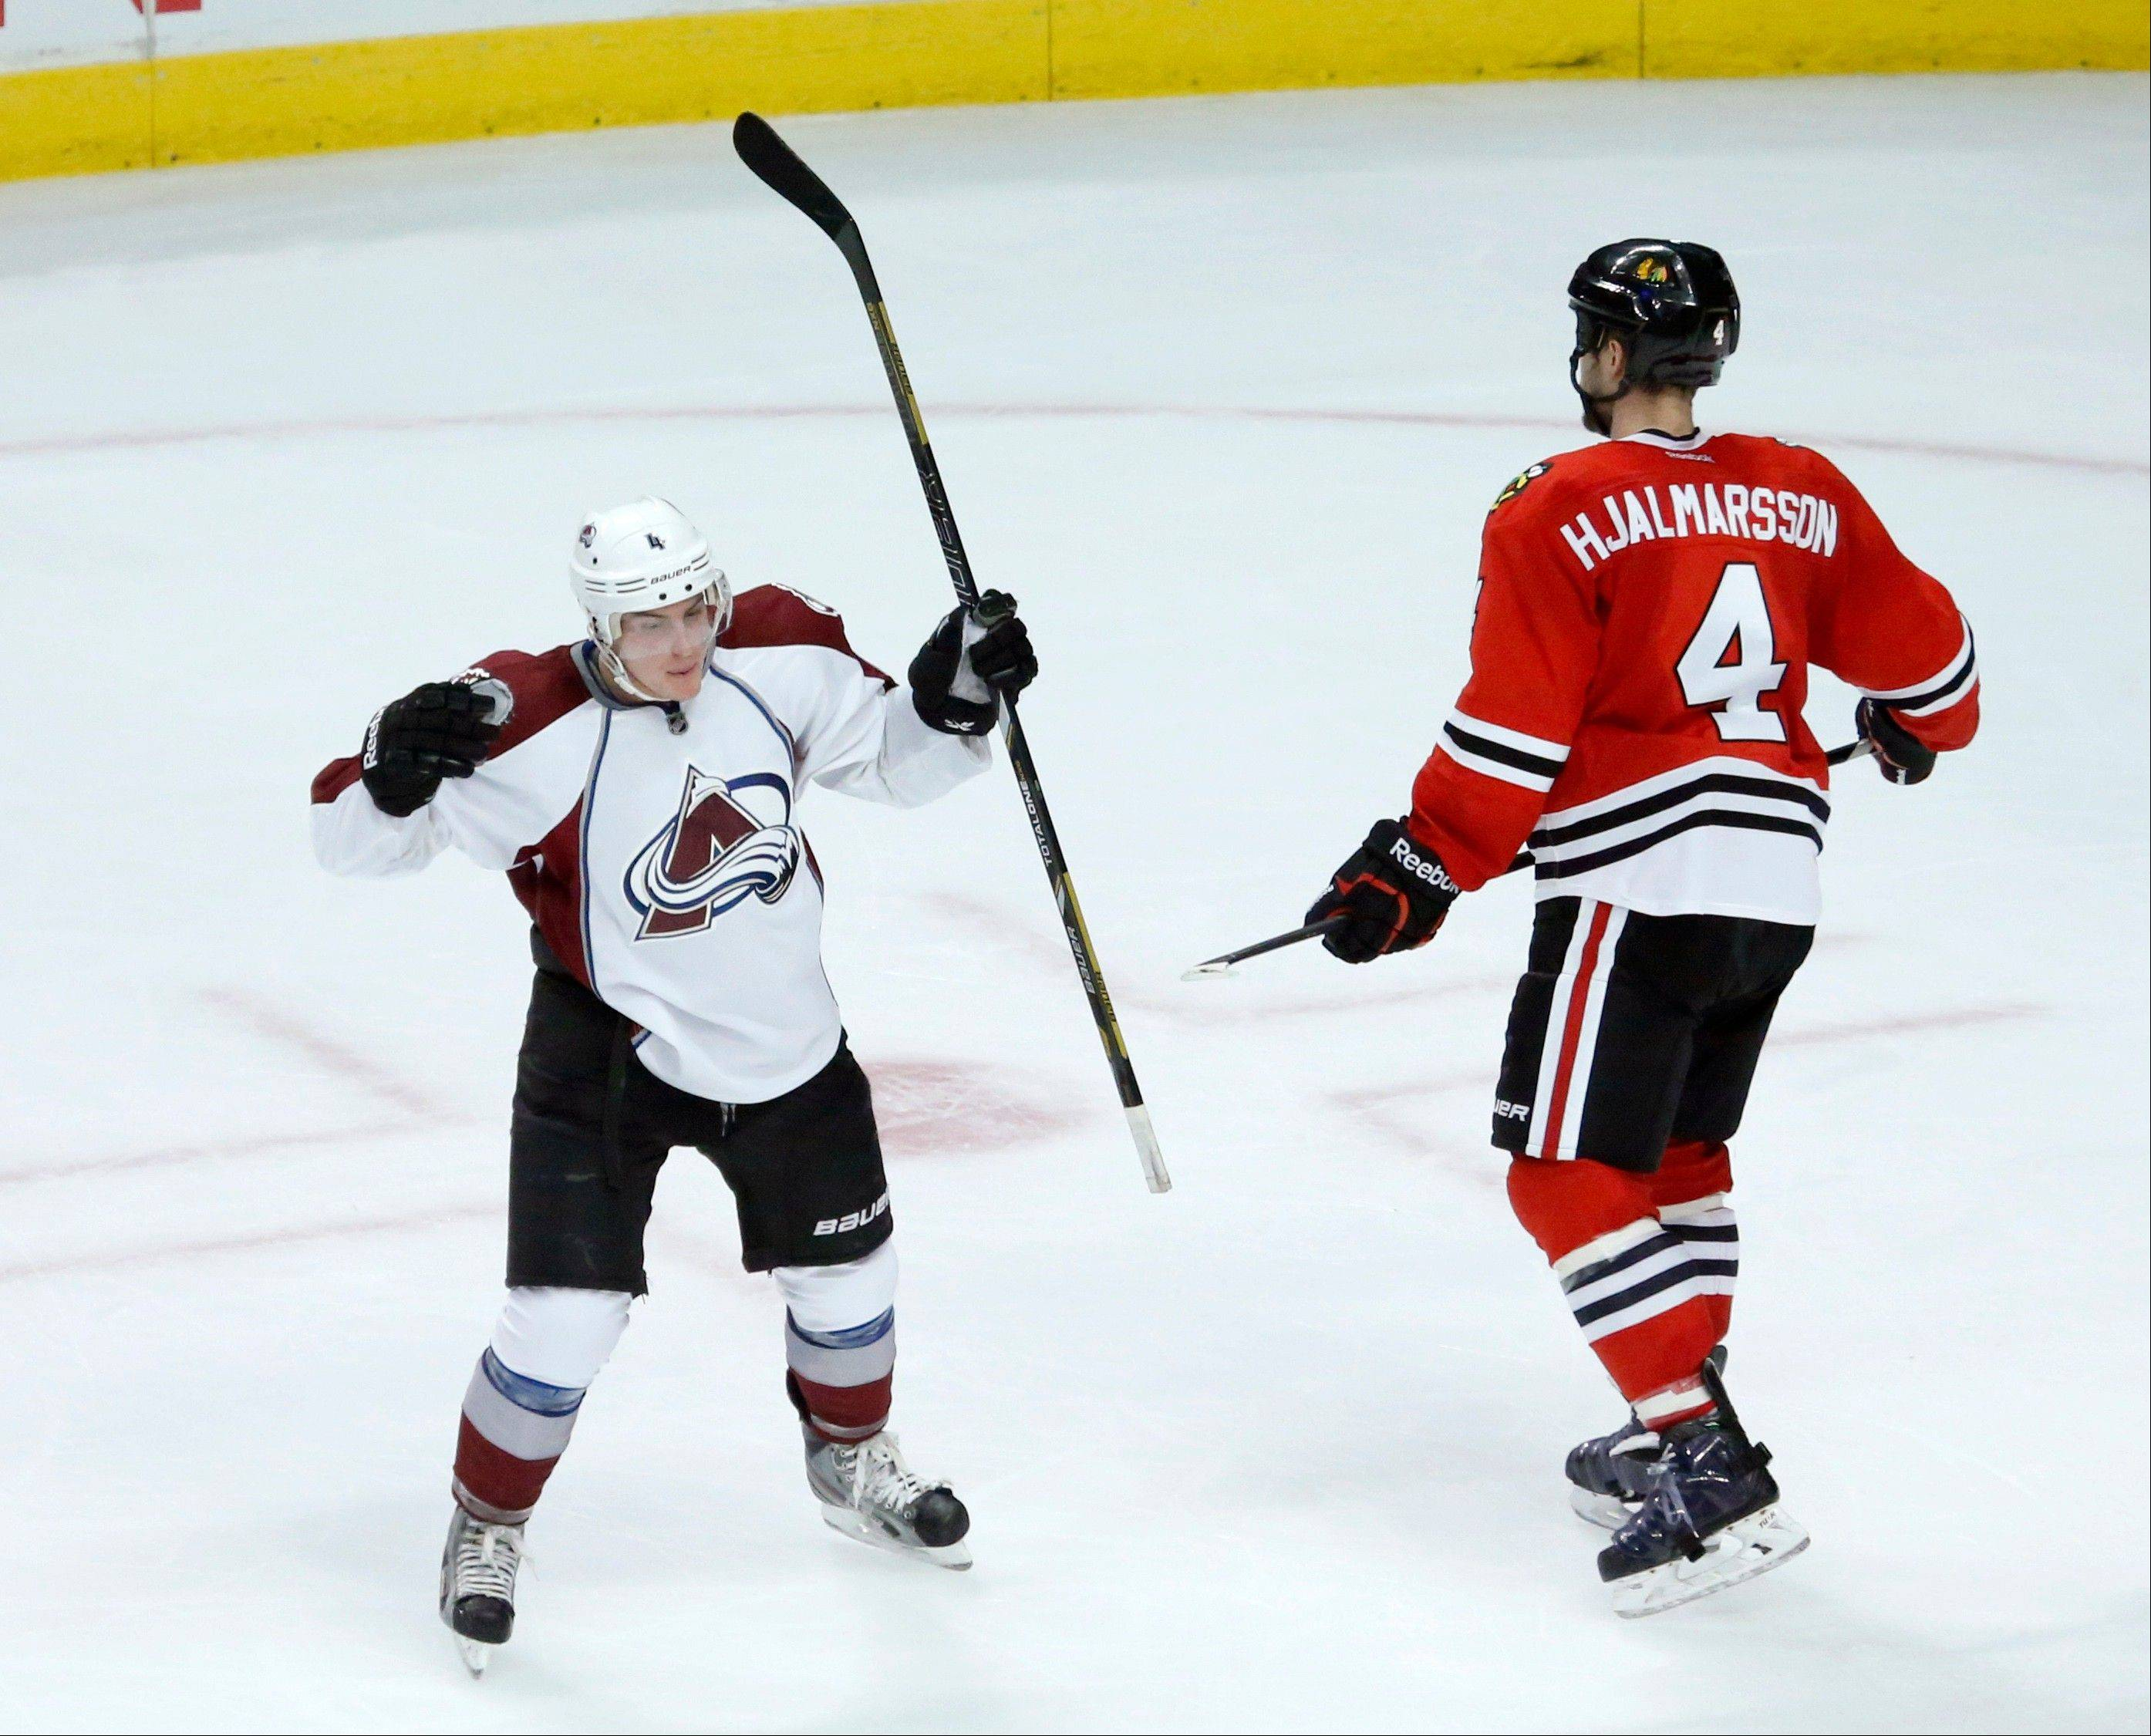 Colorado Avalanche defenseman Tyson Barrie (4) celebrates his winning goal in overtime as Chicago Blackhawks defenseman Niklas Hjalmarsson skates away in an NHL hockey game, Tuesday, Jan. 14, 2014, in Chicago.